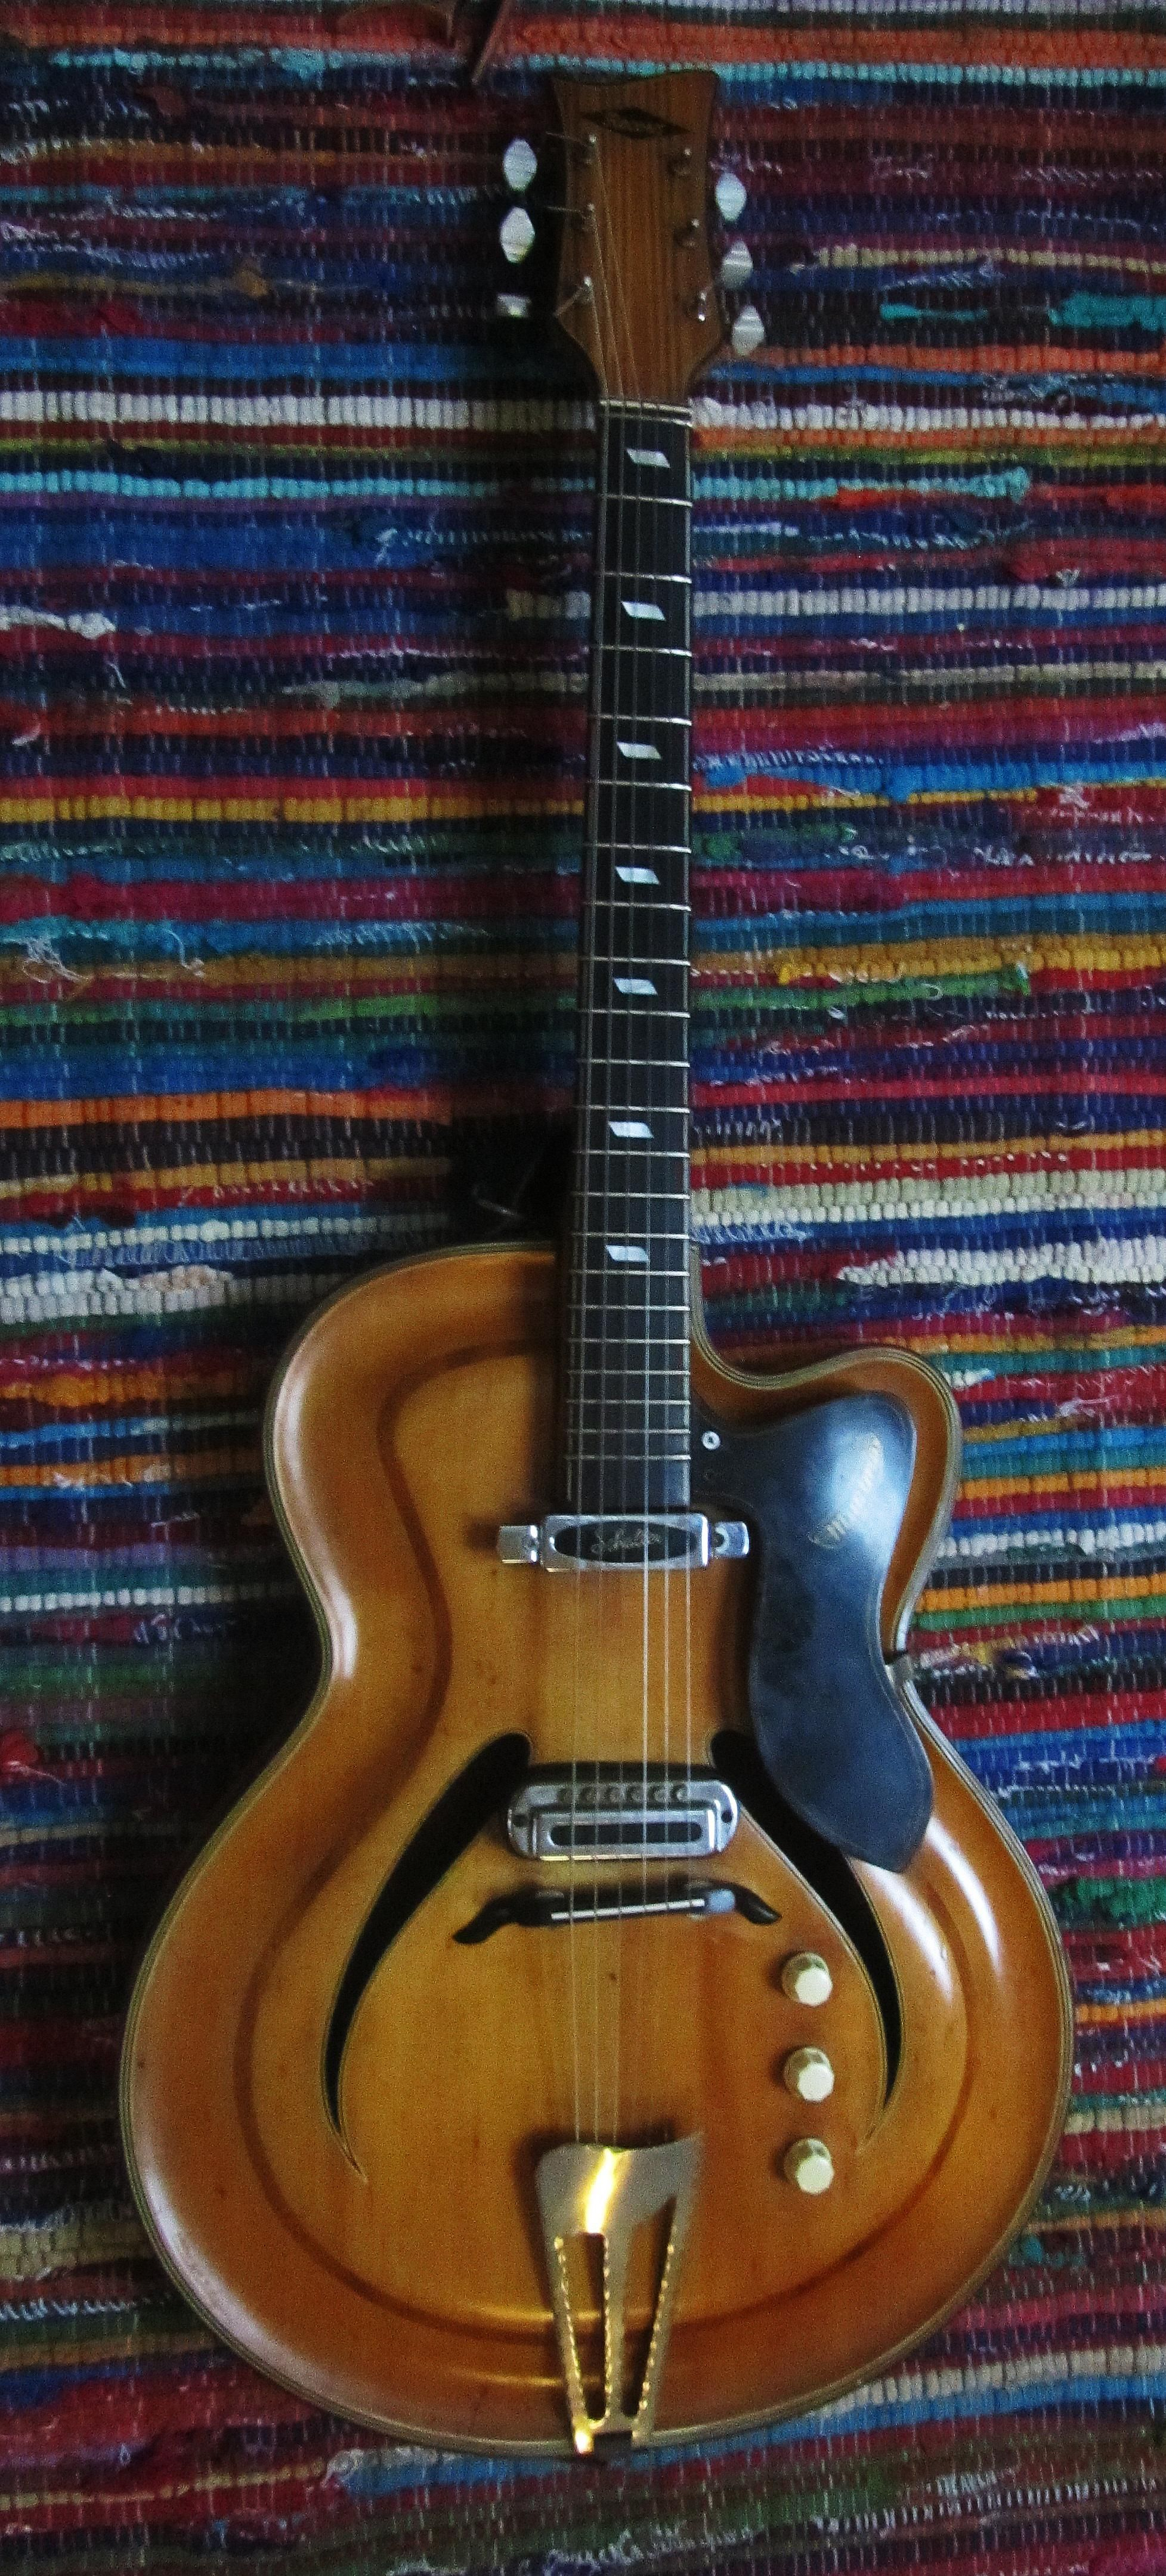 Musima Record: my main guitar with Undskyld probably until the end of time!